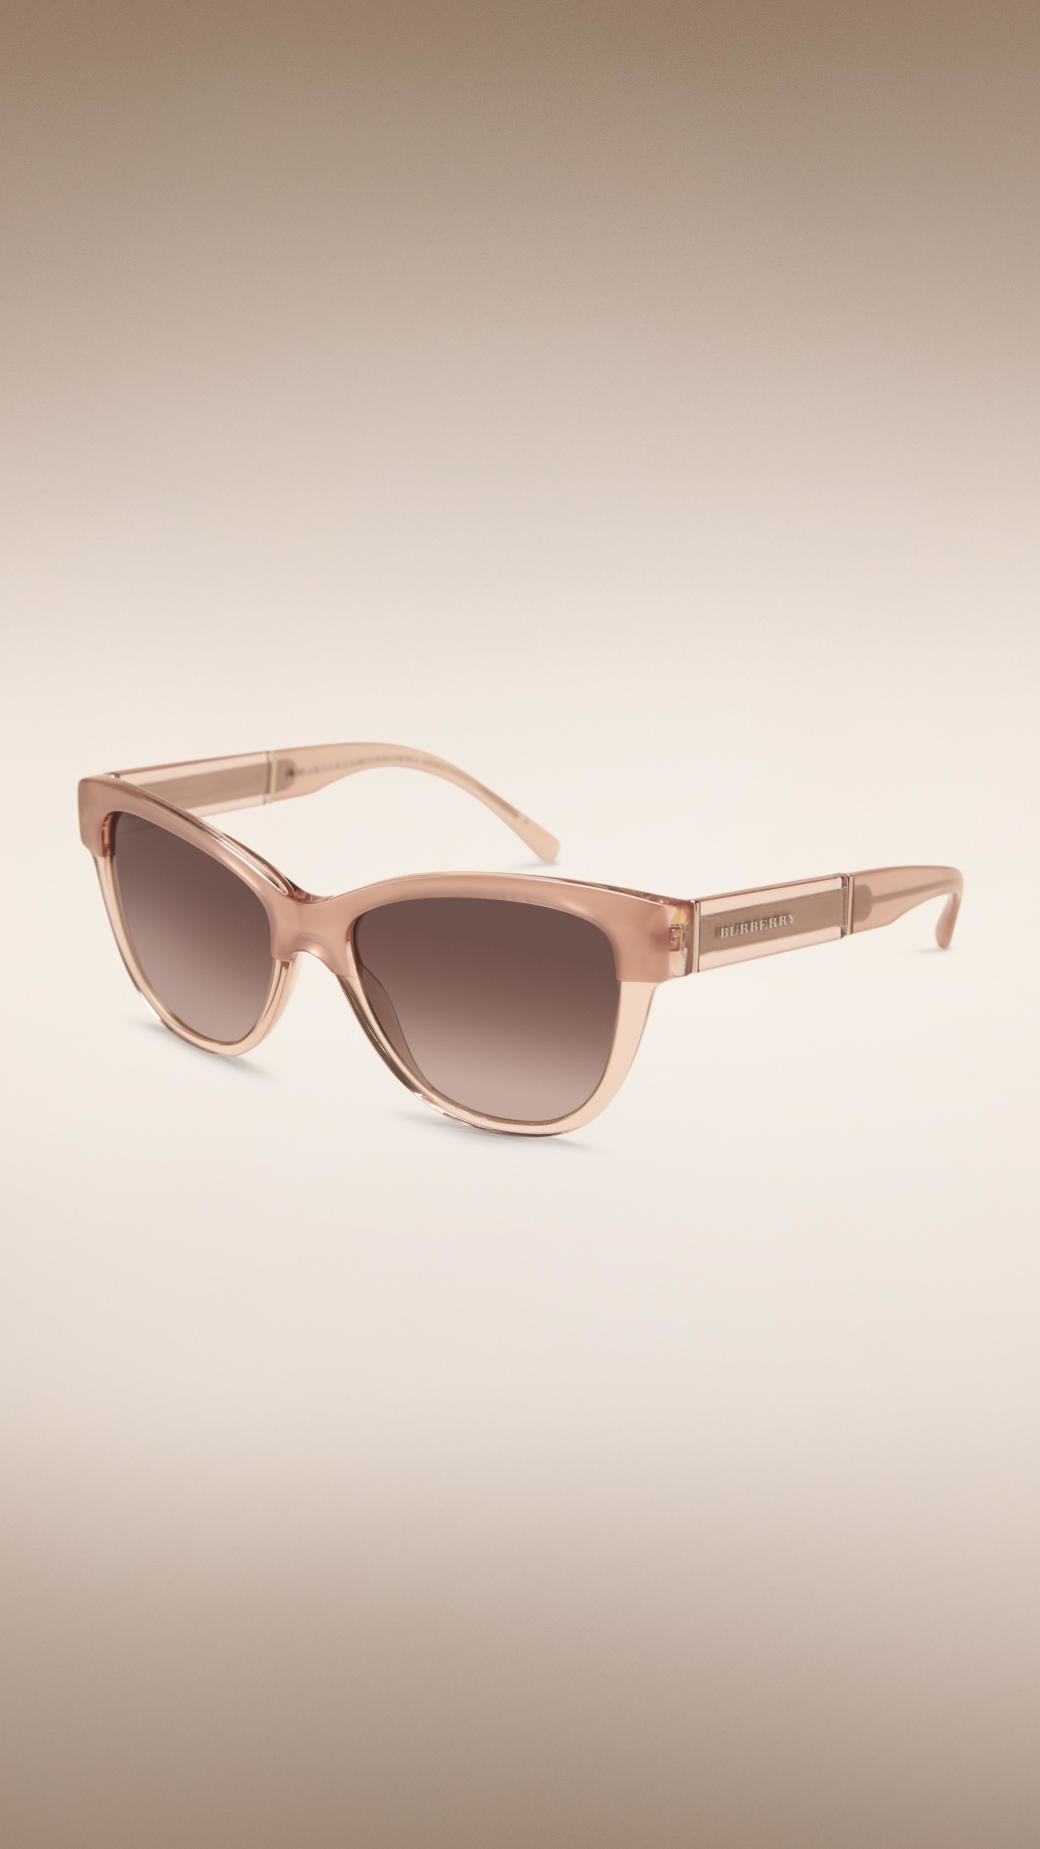 59de29eaed061 Burberry Cat-eye Sunglasses Nude in Natural - Lyst